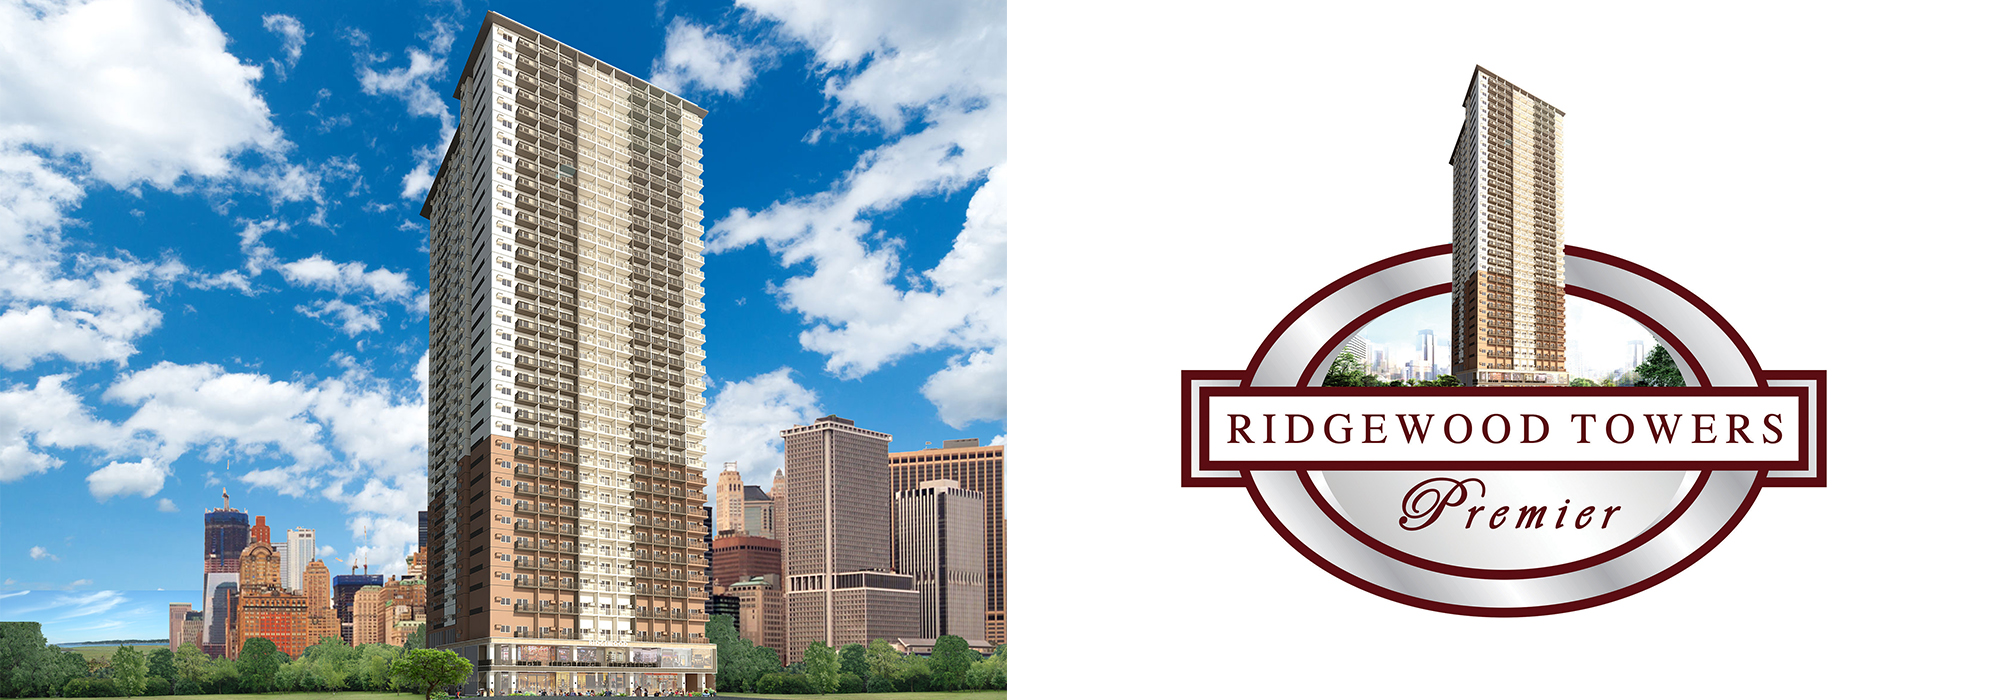 Ridgewood Towers Premier